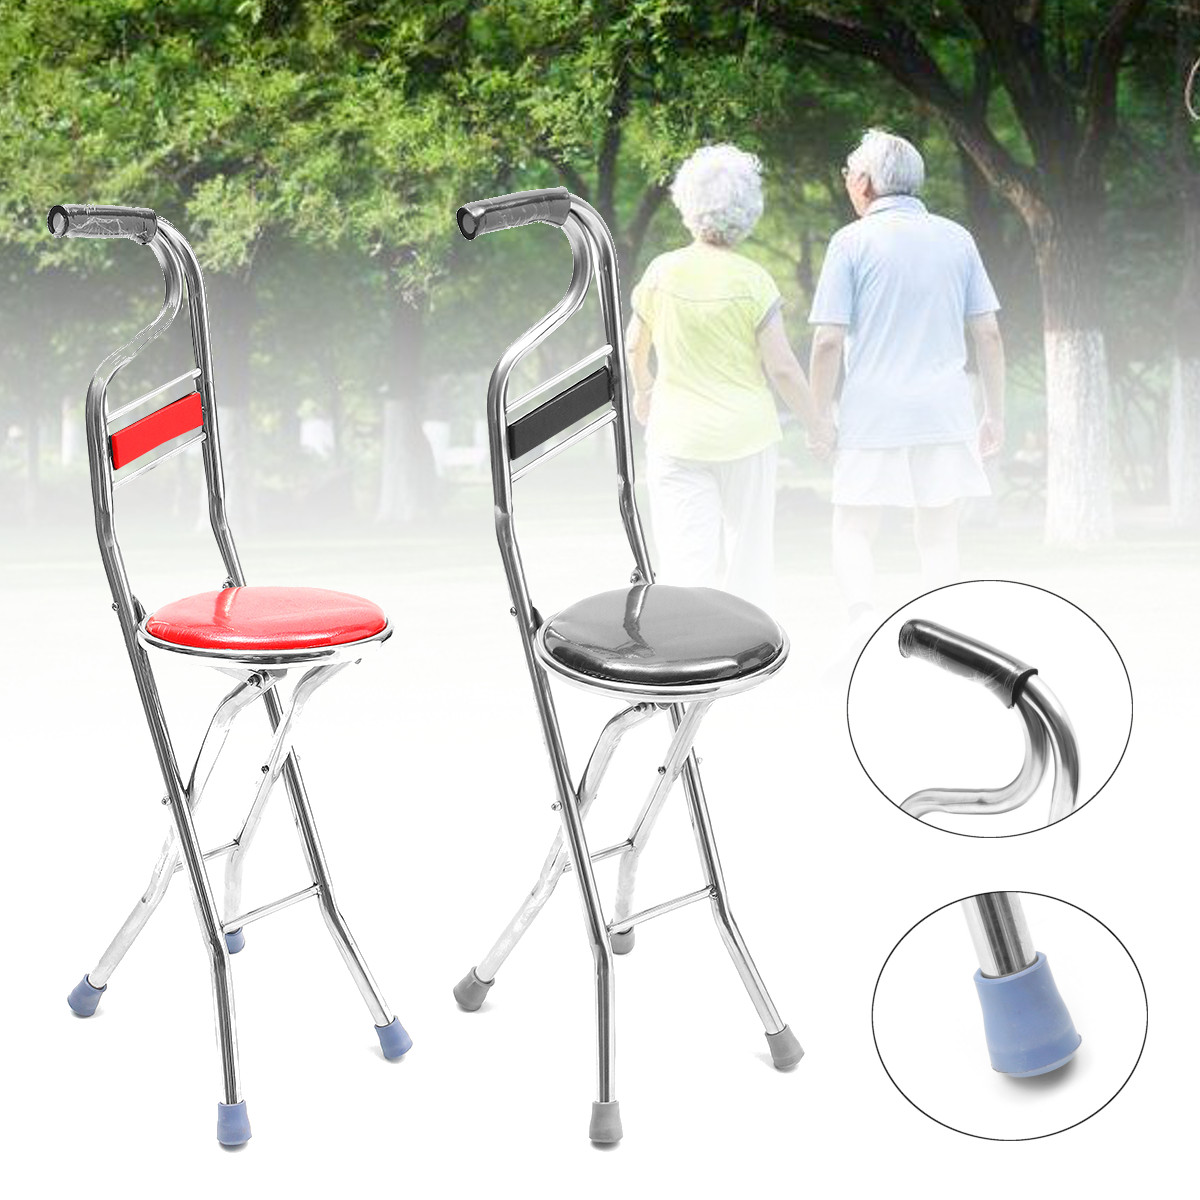 Merveilleux 2 In 1 Adjustable Stainless Walking Cane Stick Elderly Care Portable  Folding Walking Stick Travel Cane